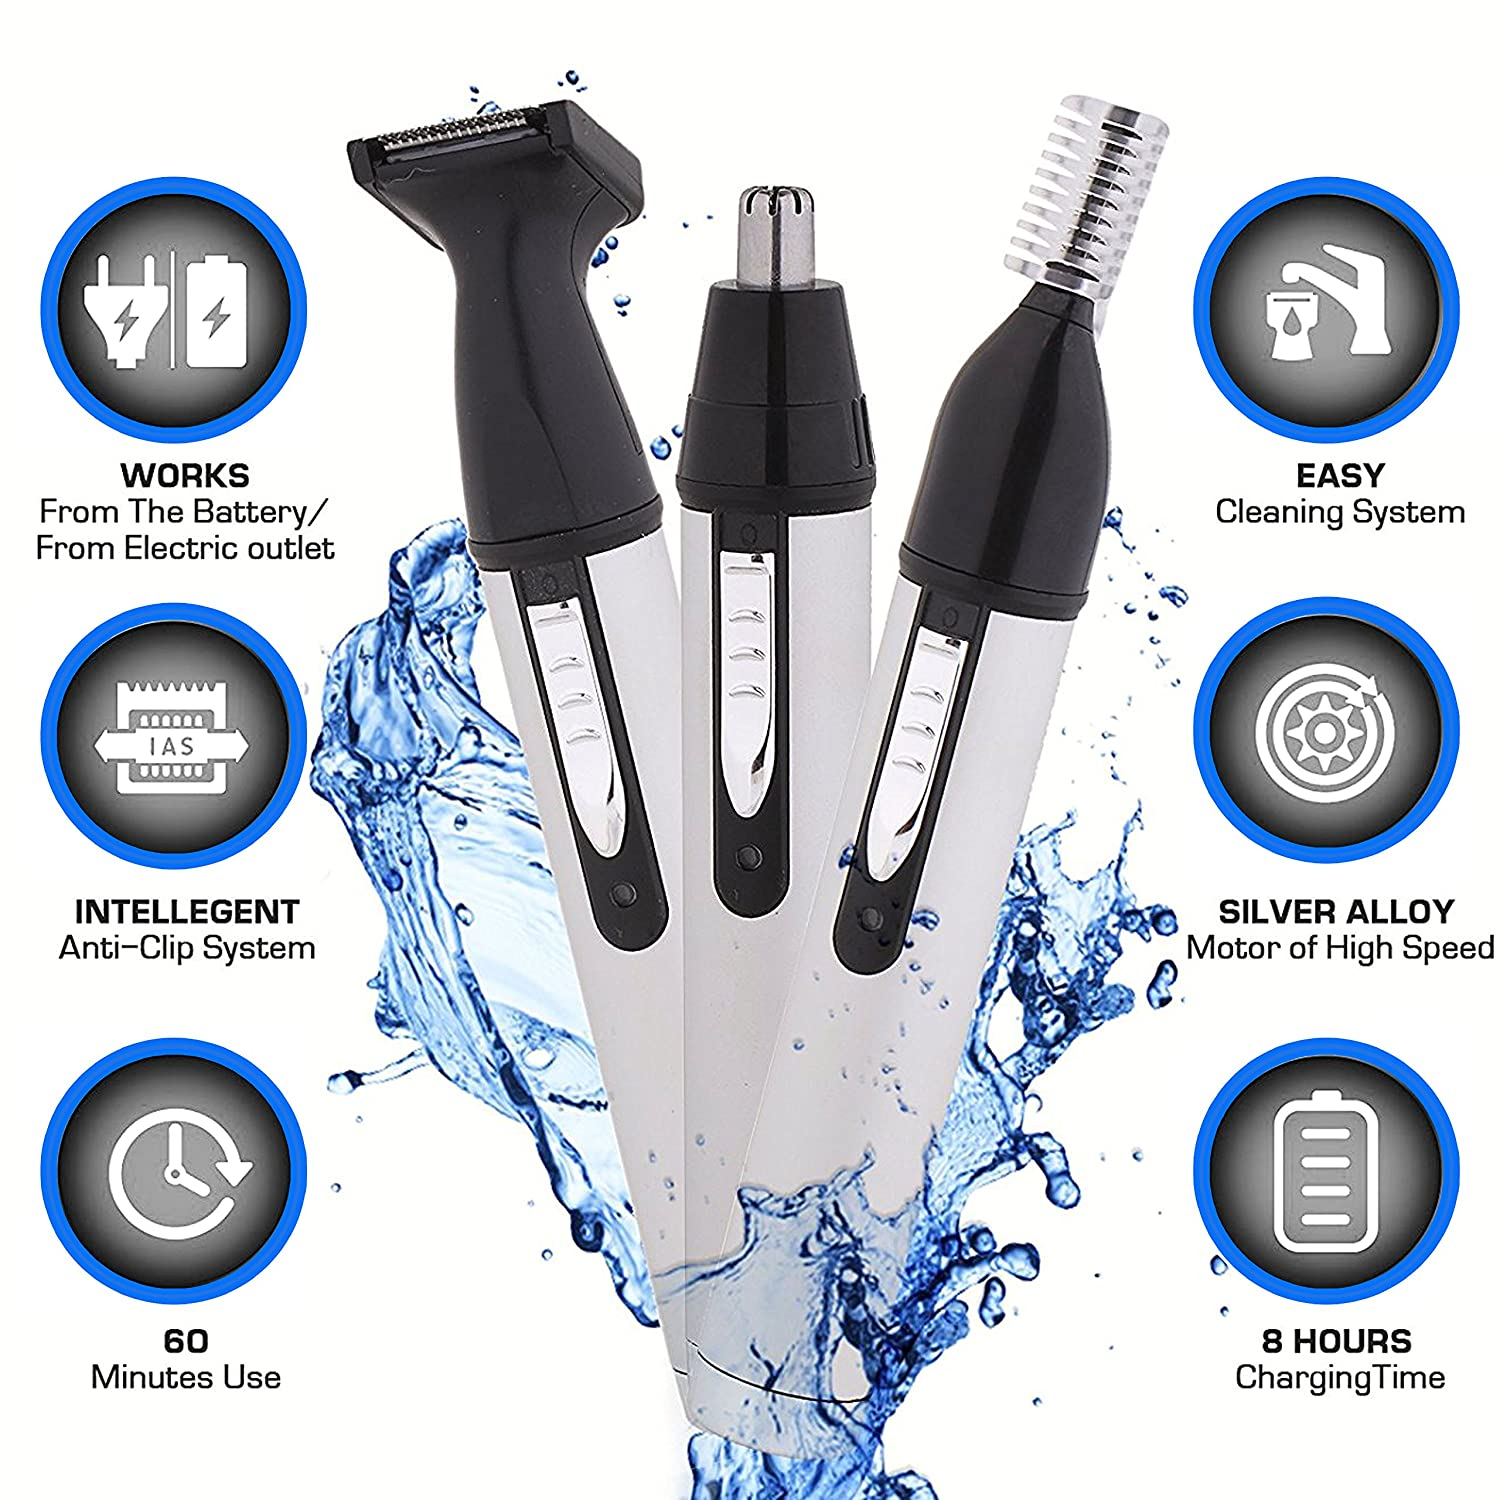 Nose Hair Trimmer - Electric Personal Trimmer for Men Women - Eyebrow Ear Beard Cordless Trimmer - Best Precision Face Portable Trimmer - 3 in 1 Facial Stainless Steel Professional Nose Clippers Gemey